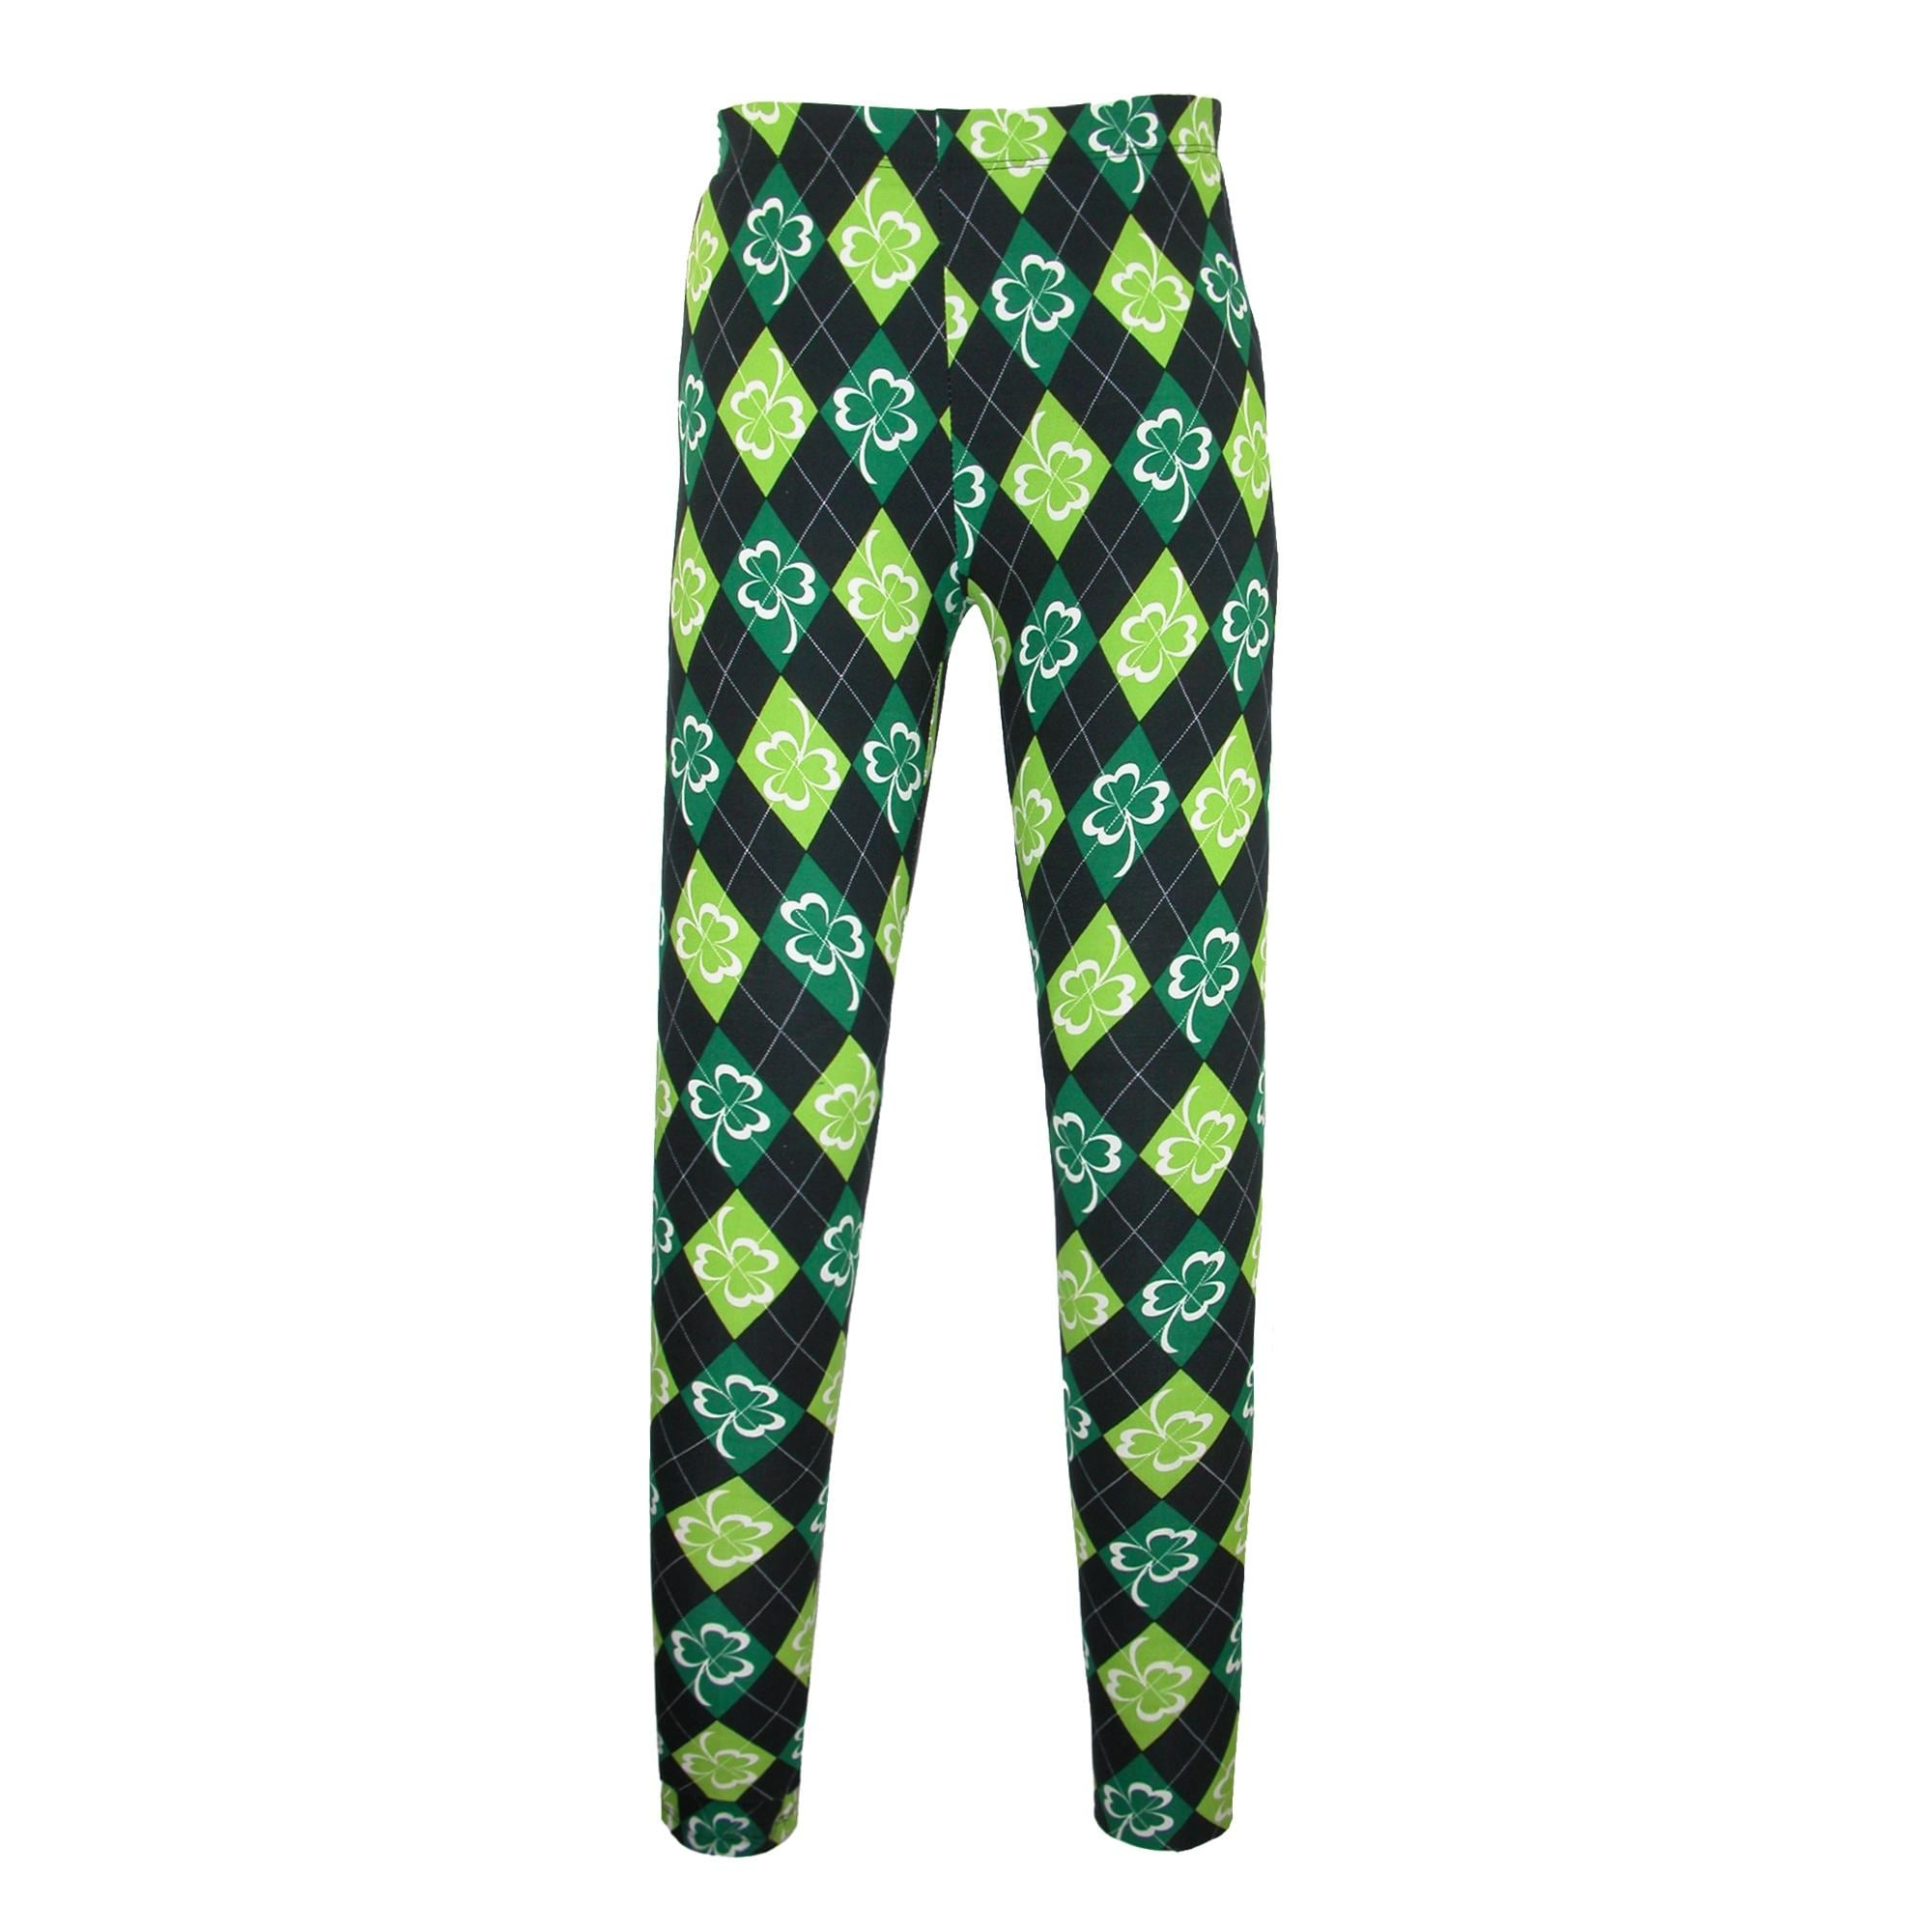 Shamrock Capri Leggings For Women Printed Green Shamrock Clover St Patricks Day